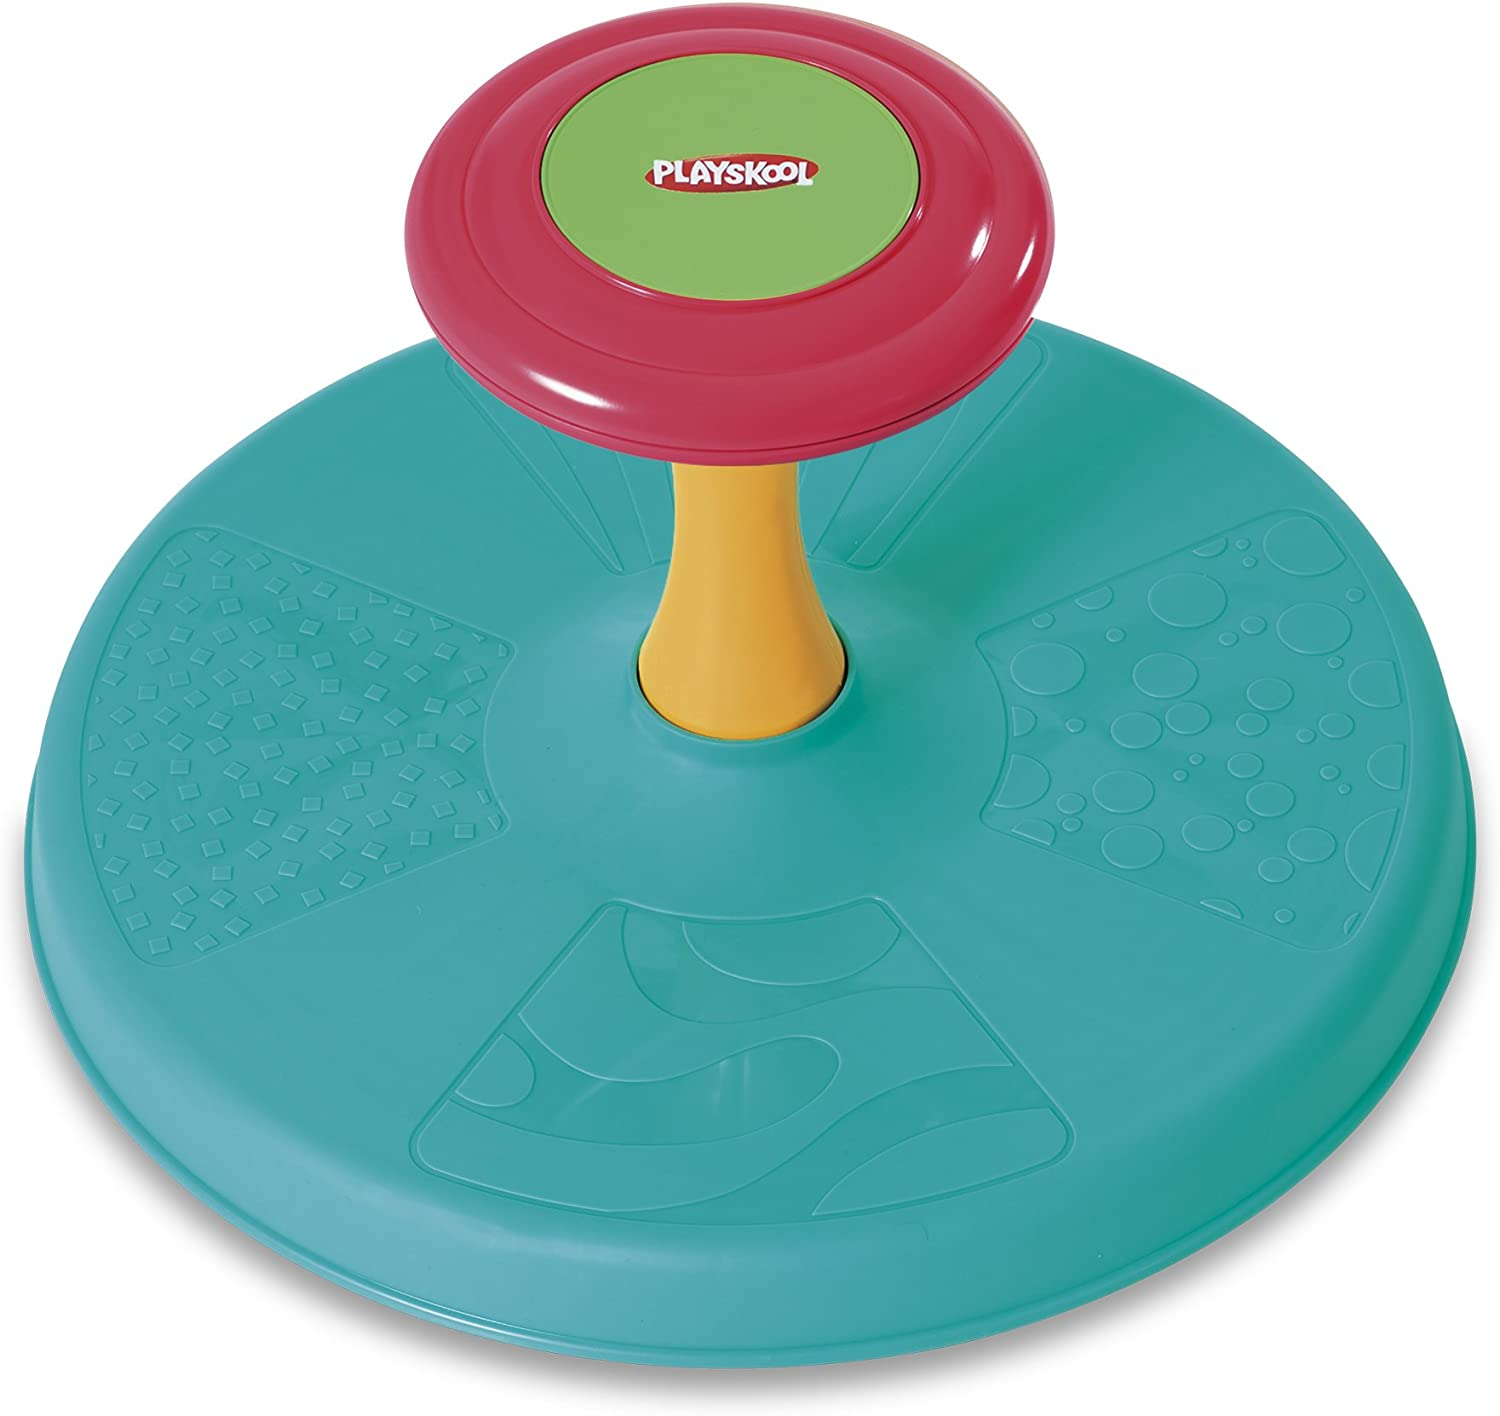 B0050Q3PXS Playskool Sit 'n Spin Classic Spinning Activity Toy for Toddlers Ages Over 18 Months (Amazon Exclusive) 713FObShp1L.SL1500_